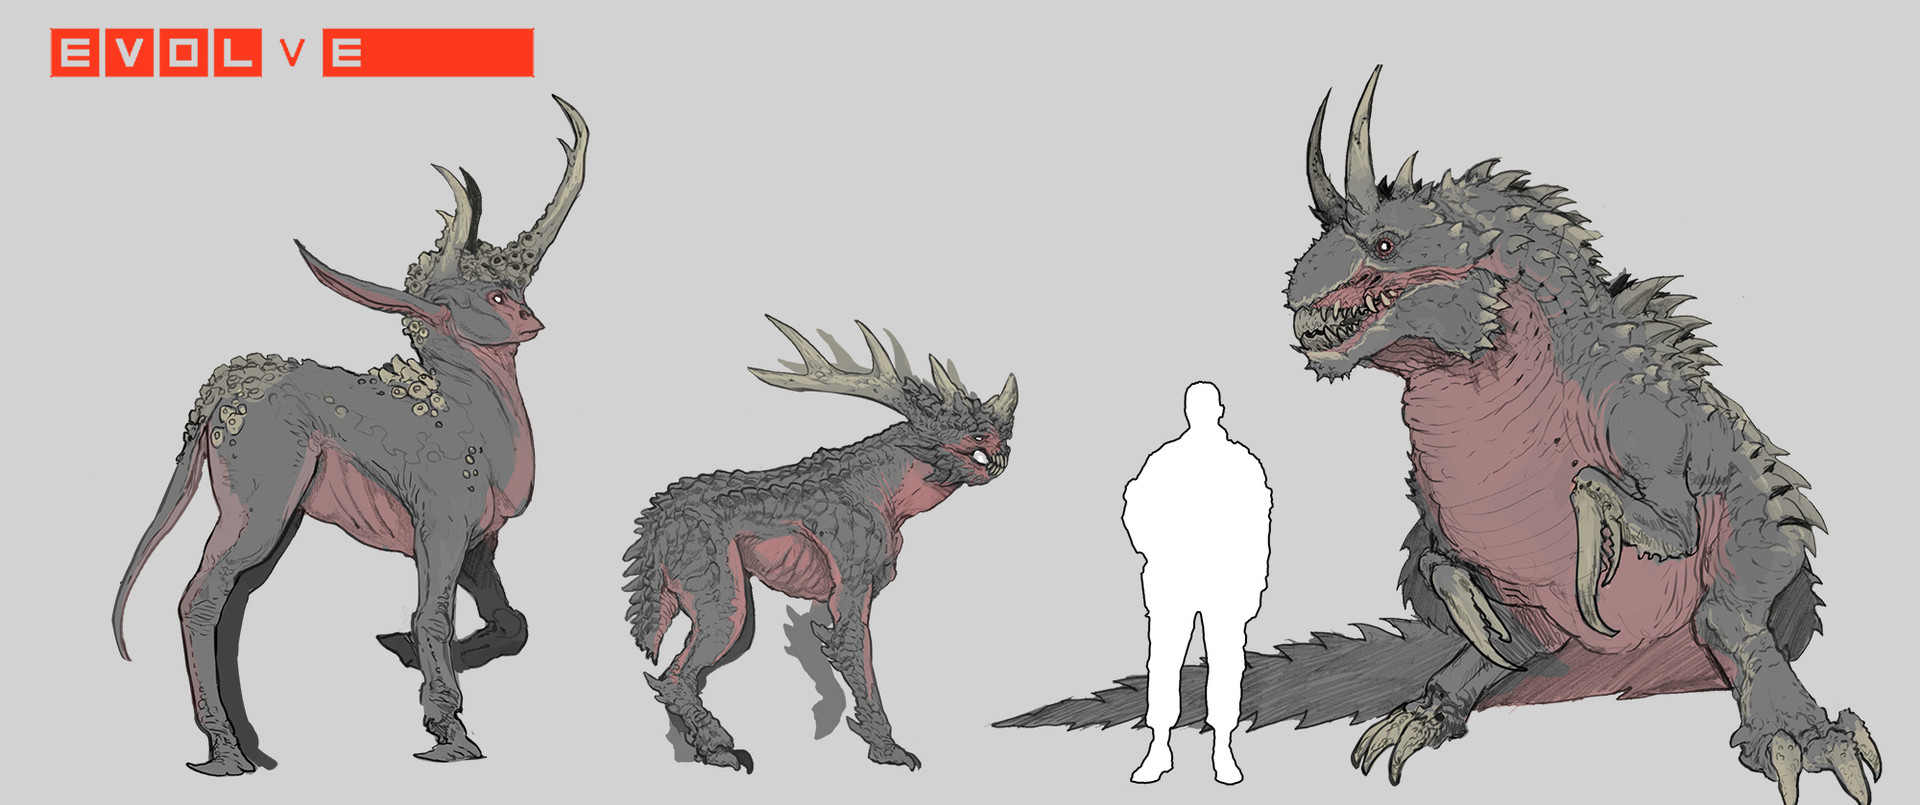 Evolve Creature Concept Art by - 200.3KB